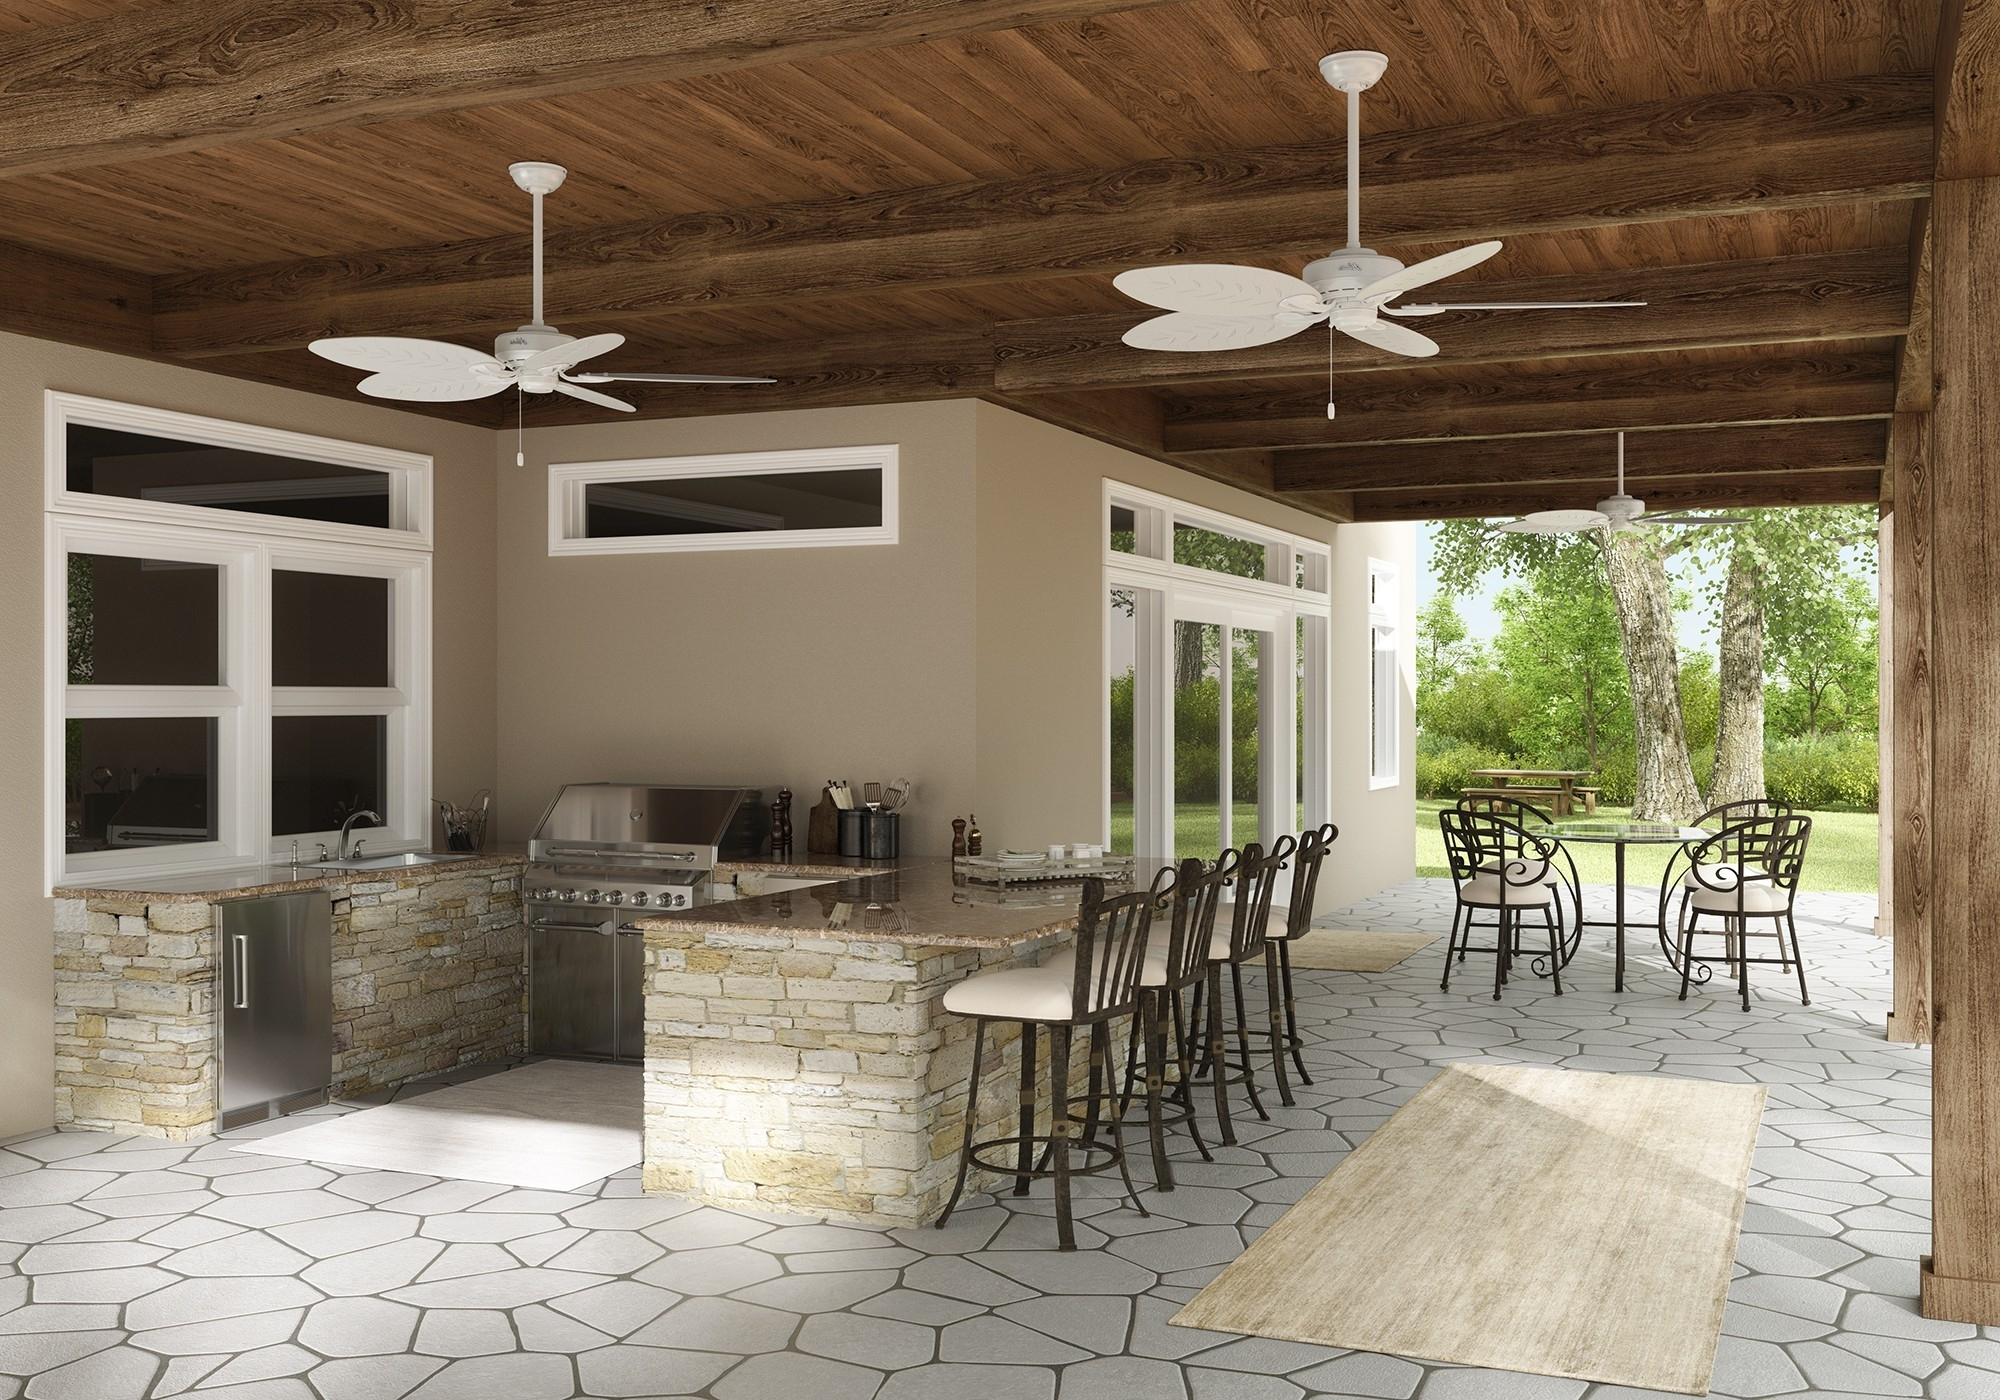 Joanna Gaines Outdoor Ceiling Fans Within Latest How To Choose An Outdoor Ceiling Fan – Hunter Fan Blog (View 13 of 20)